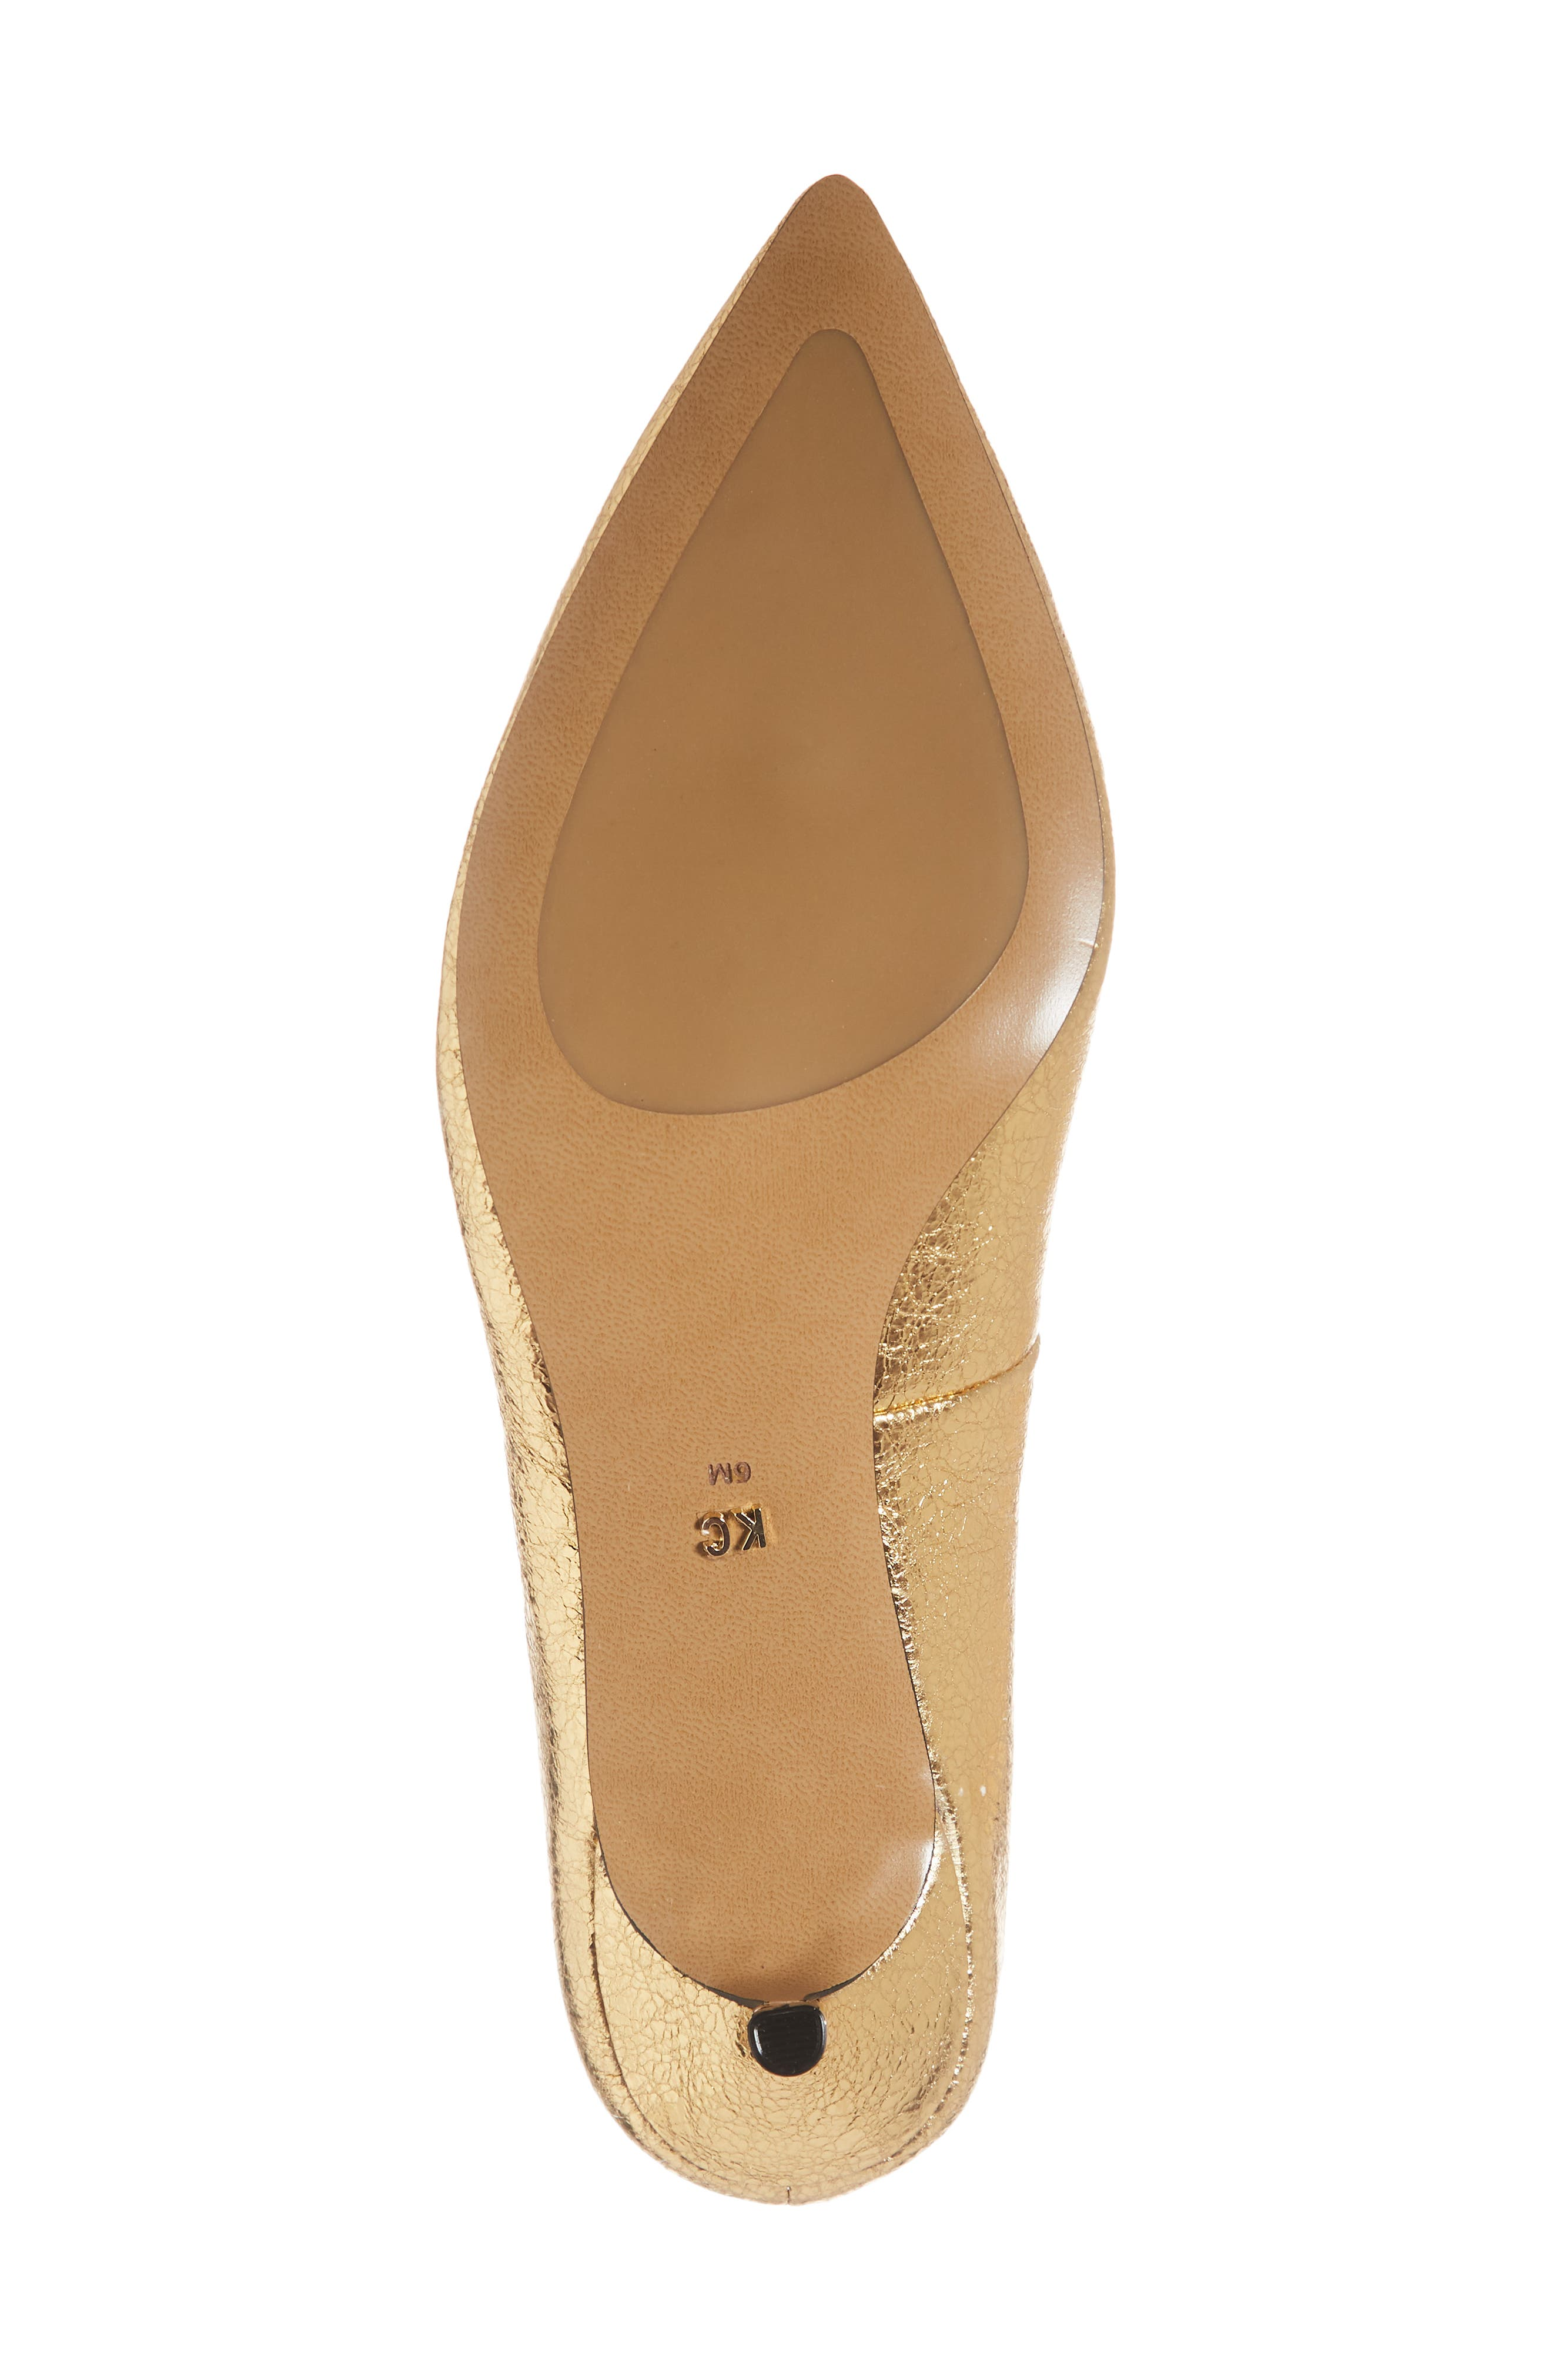 Riley 50 Pump,                             Alternate thumbnail 6, color,                             YELLOW GOLD LEATHER